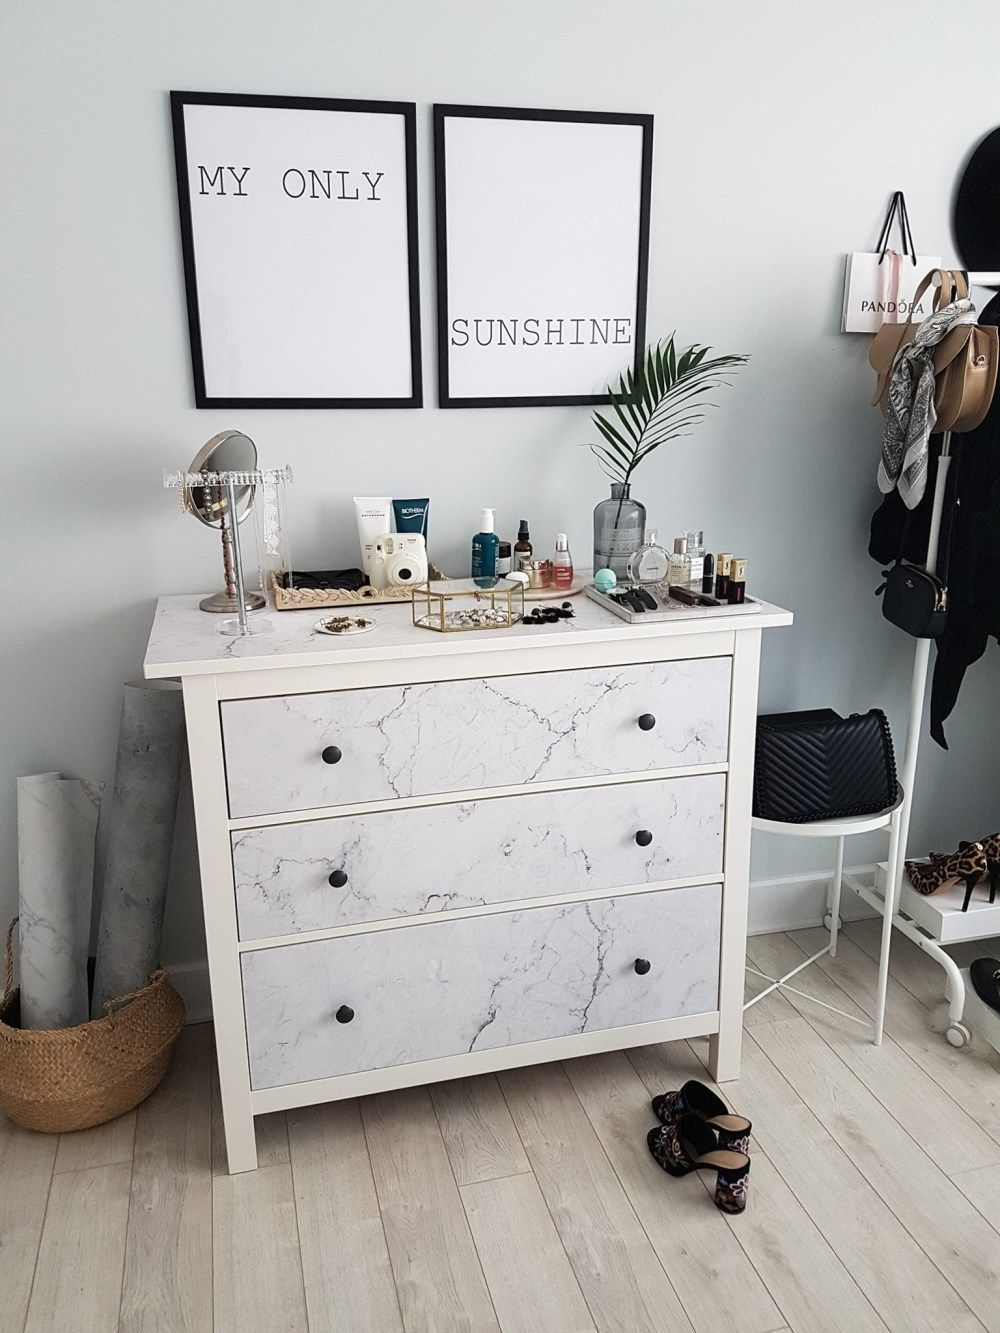 #ikeahack #ikea #marble #dresser Source: Http://www.petiteandbold.com/ Bedroom Makeover Installing Our Pixerstick Wall Mural A Chic Ikea Hack/